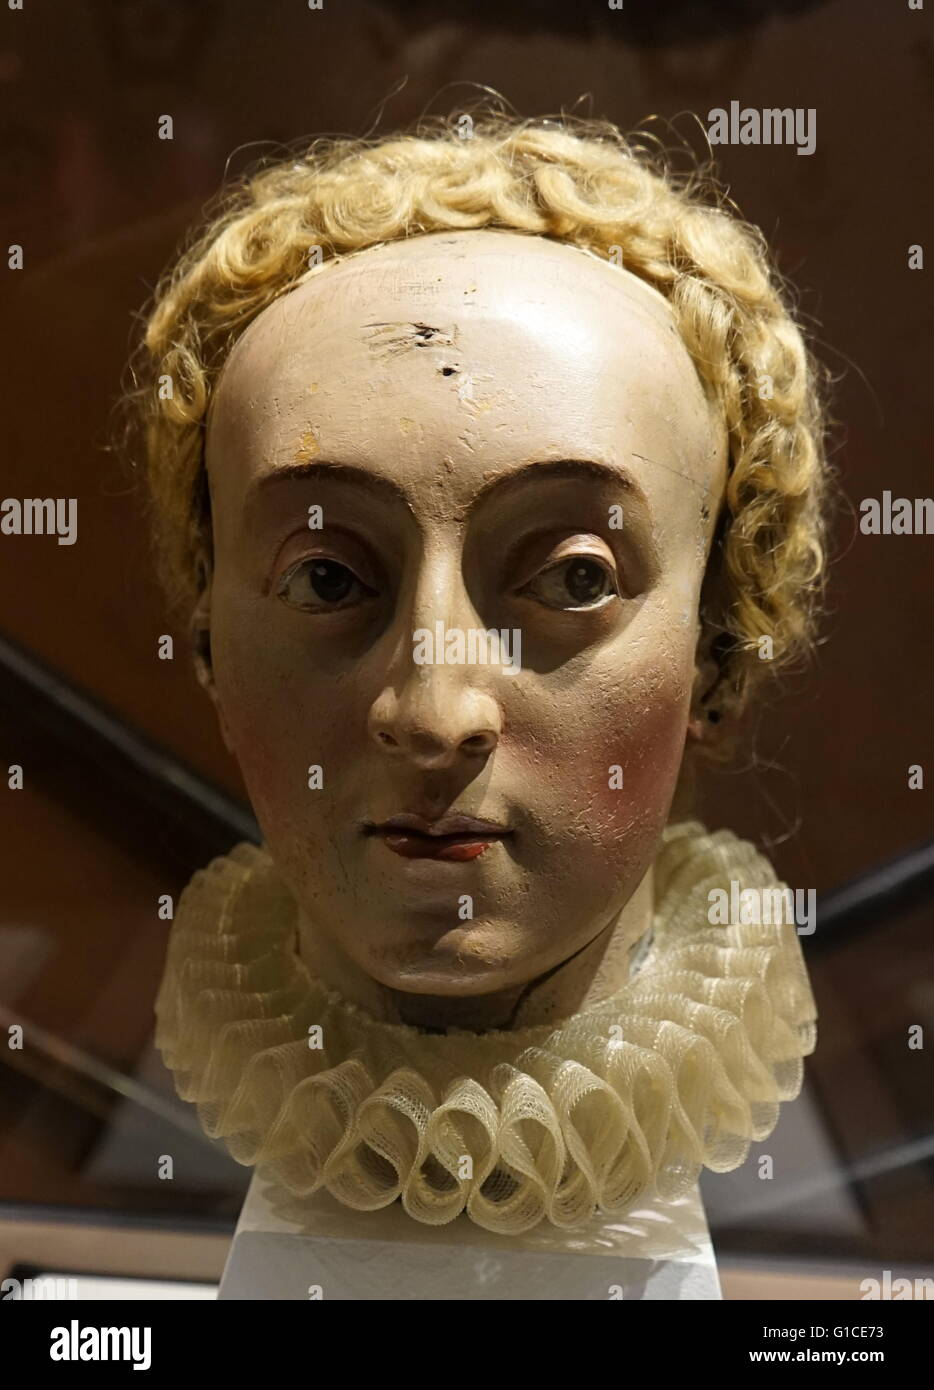 Wooden head of Queen Elizabeth I of England (1533-1603) the fifth and last  monarch of the Tudor dynasty. Dated 17th Century